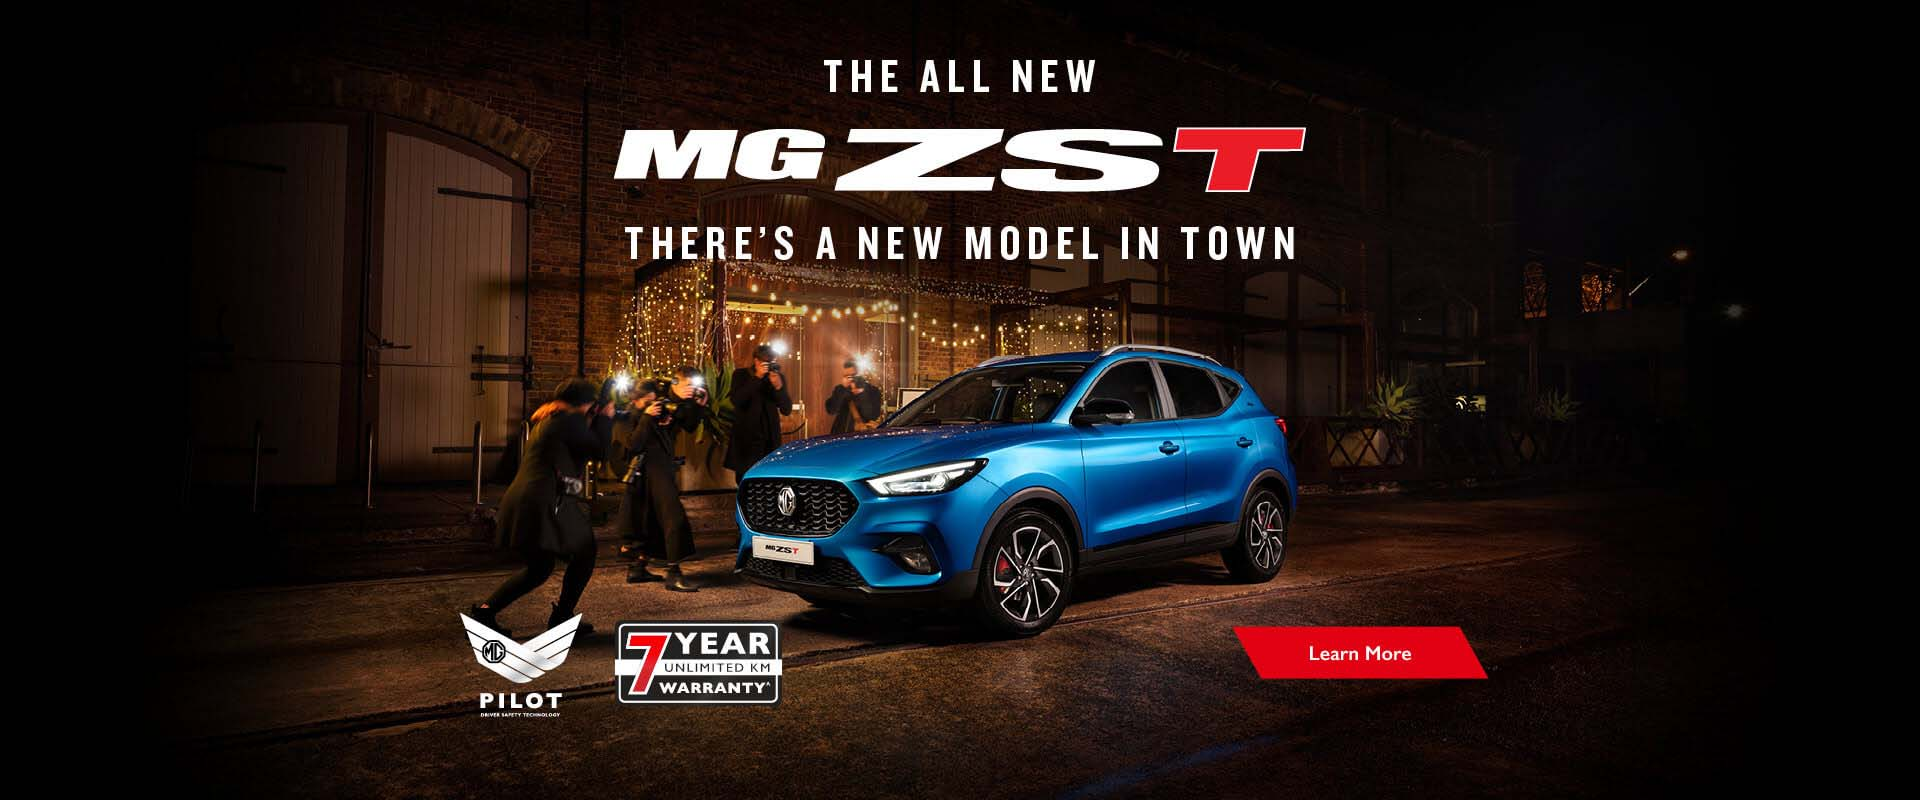 MG - New Model in Town